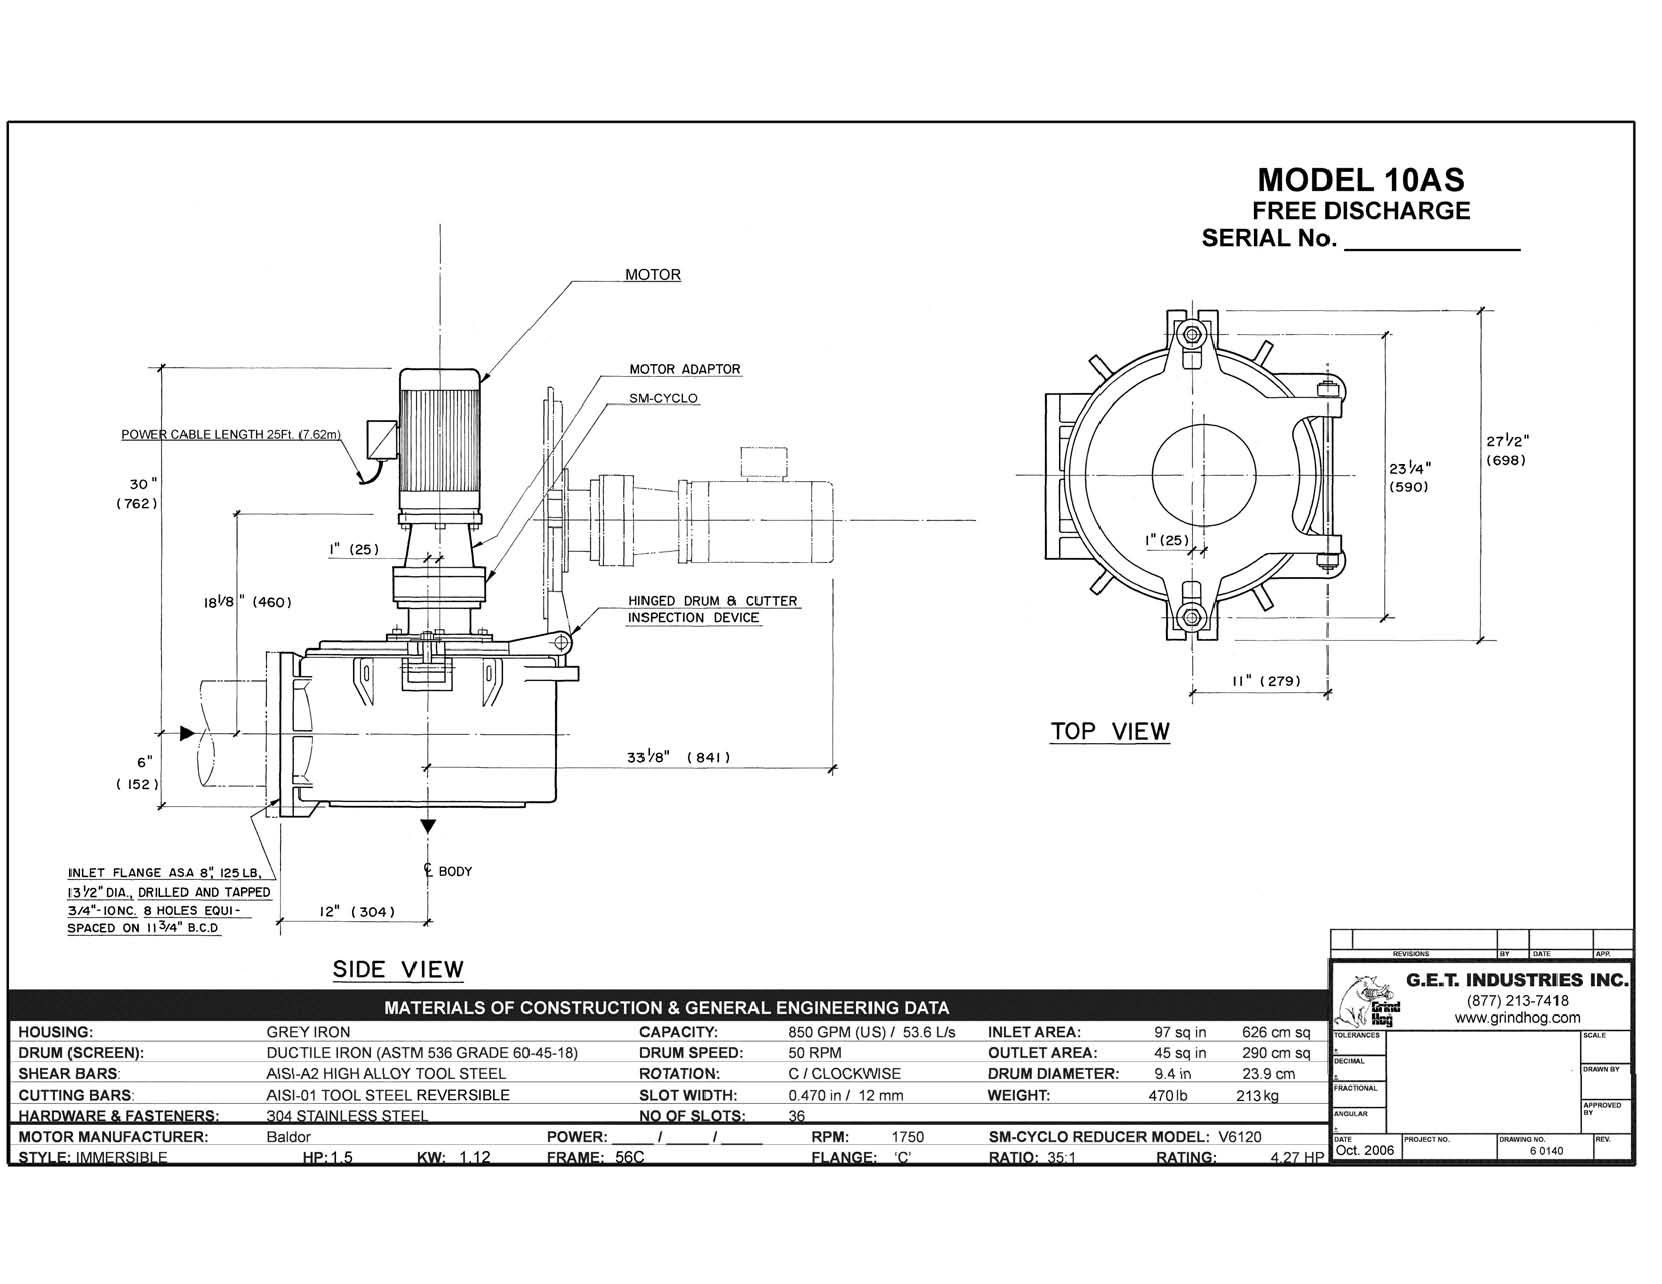 data drawing for Model 10AS